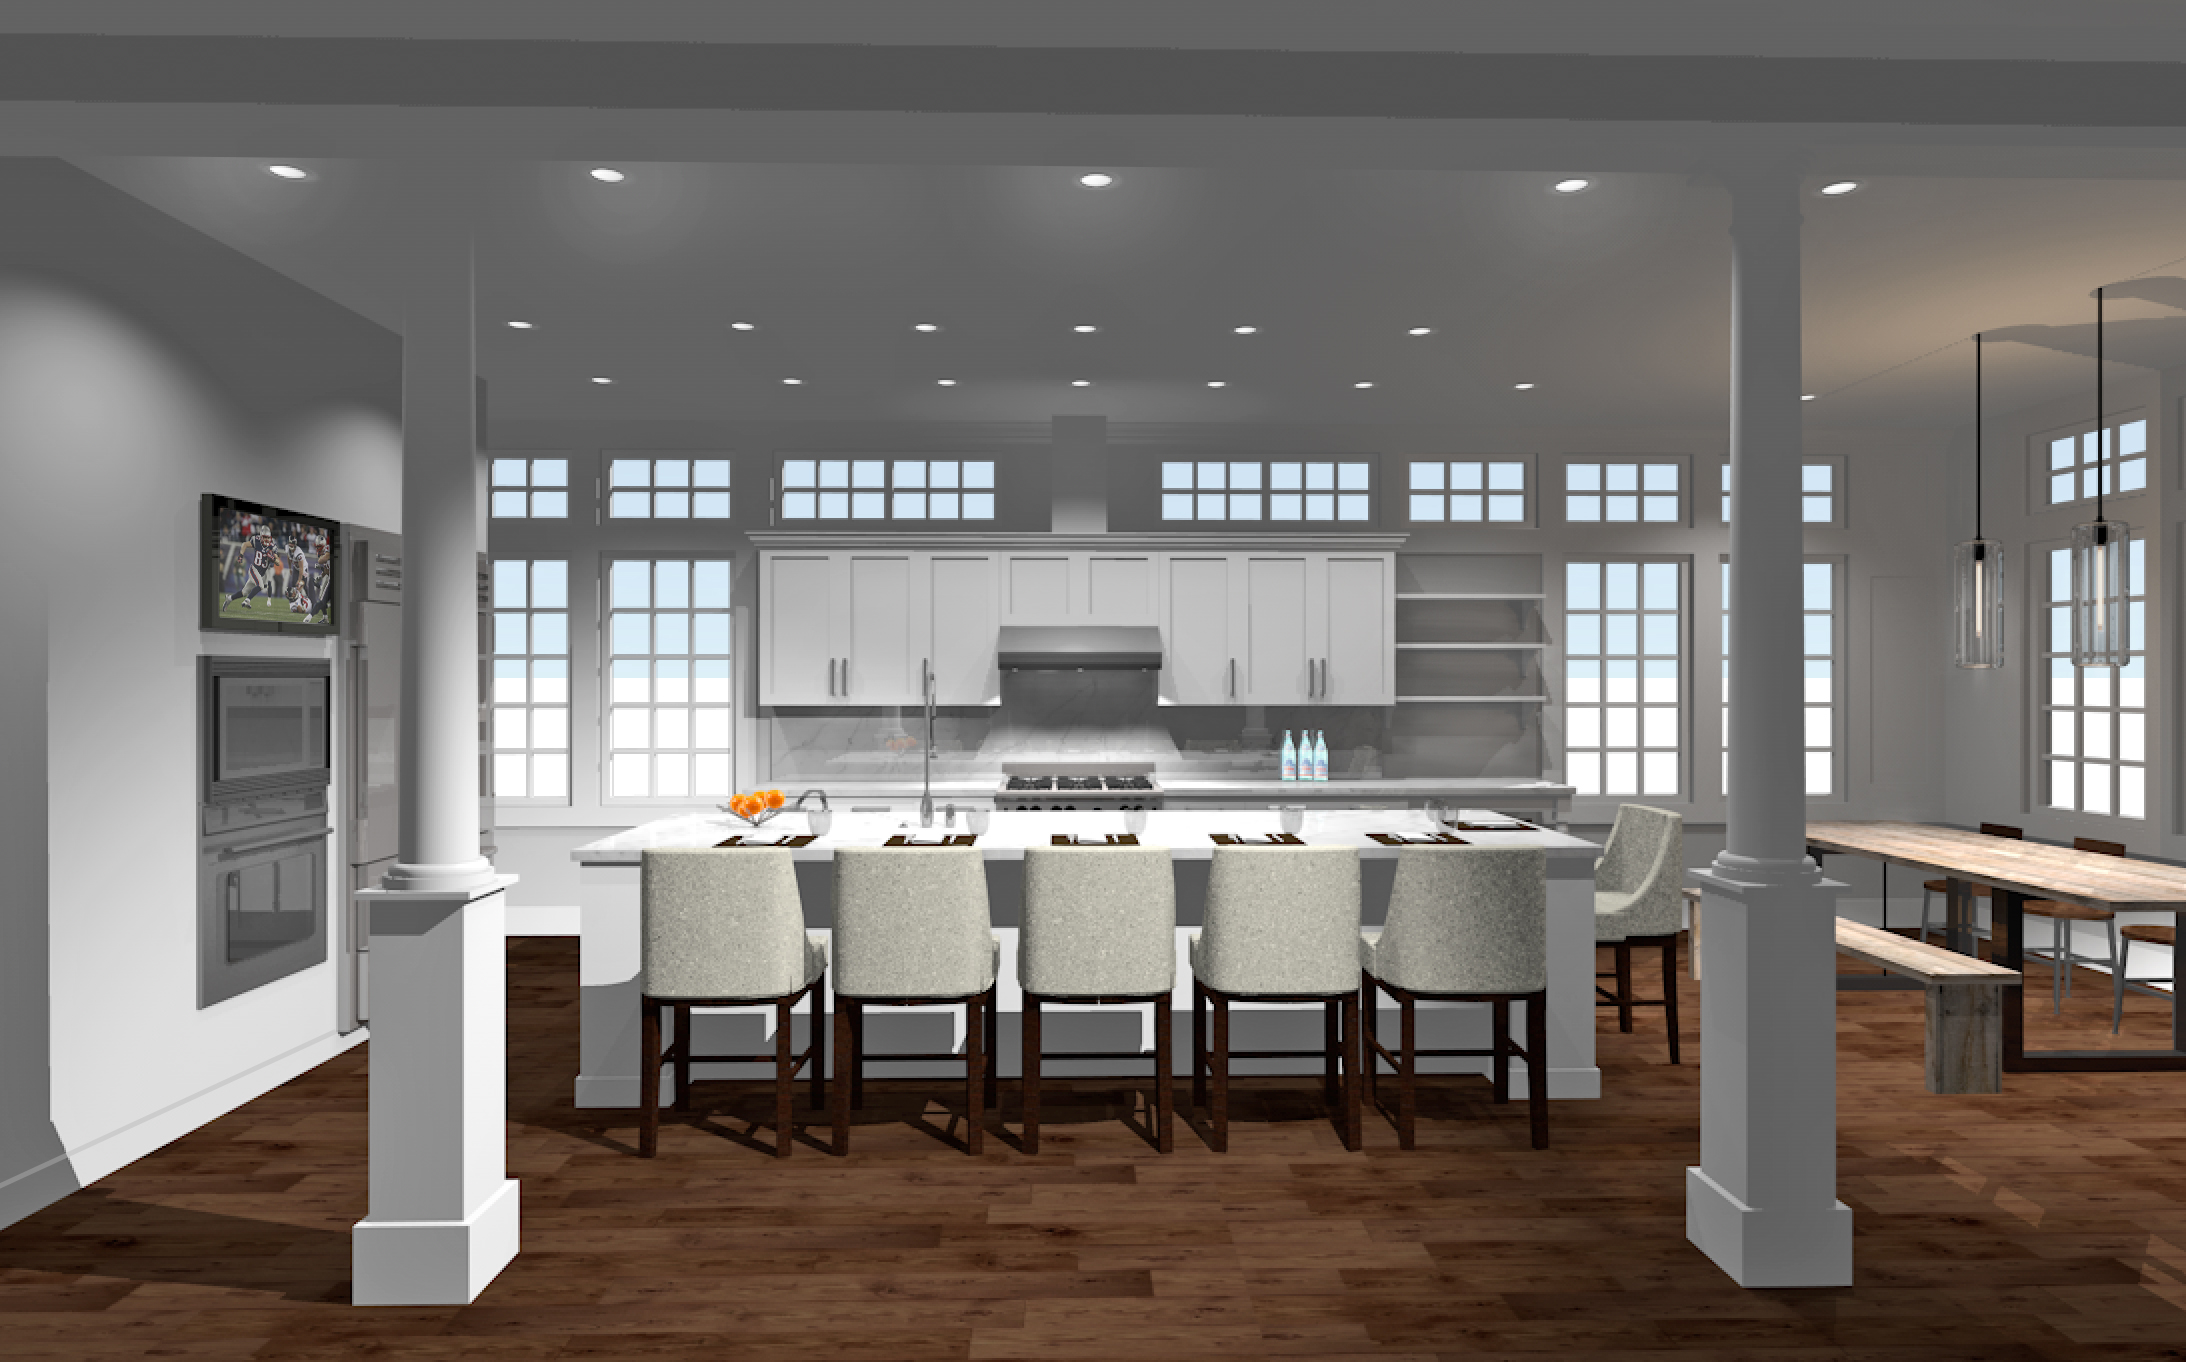 Kitchen Scheme1.jpg